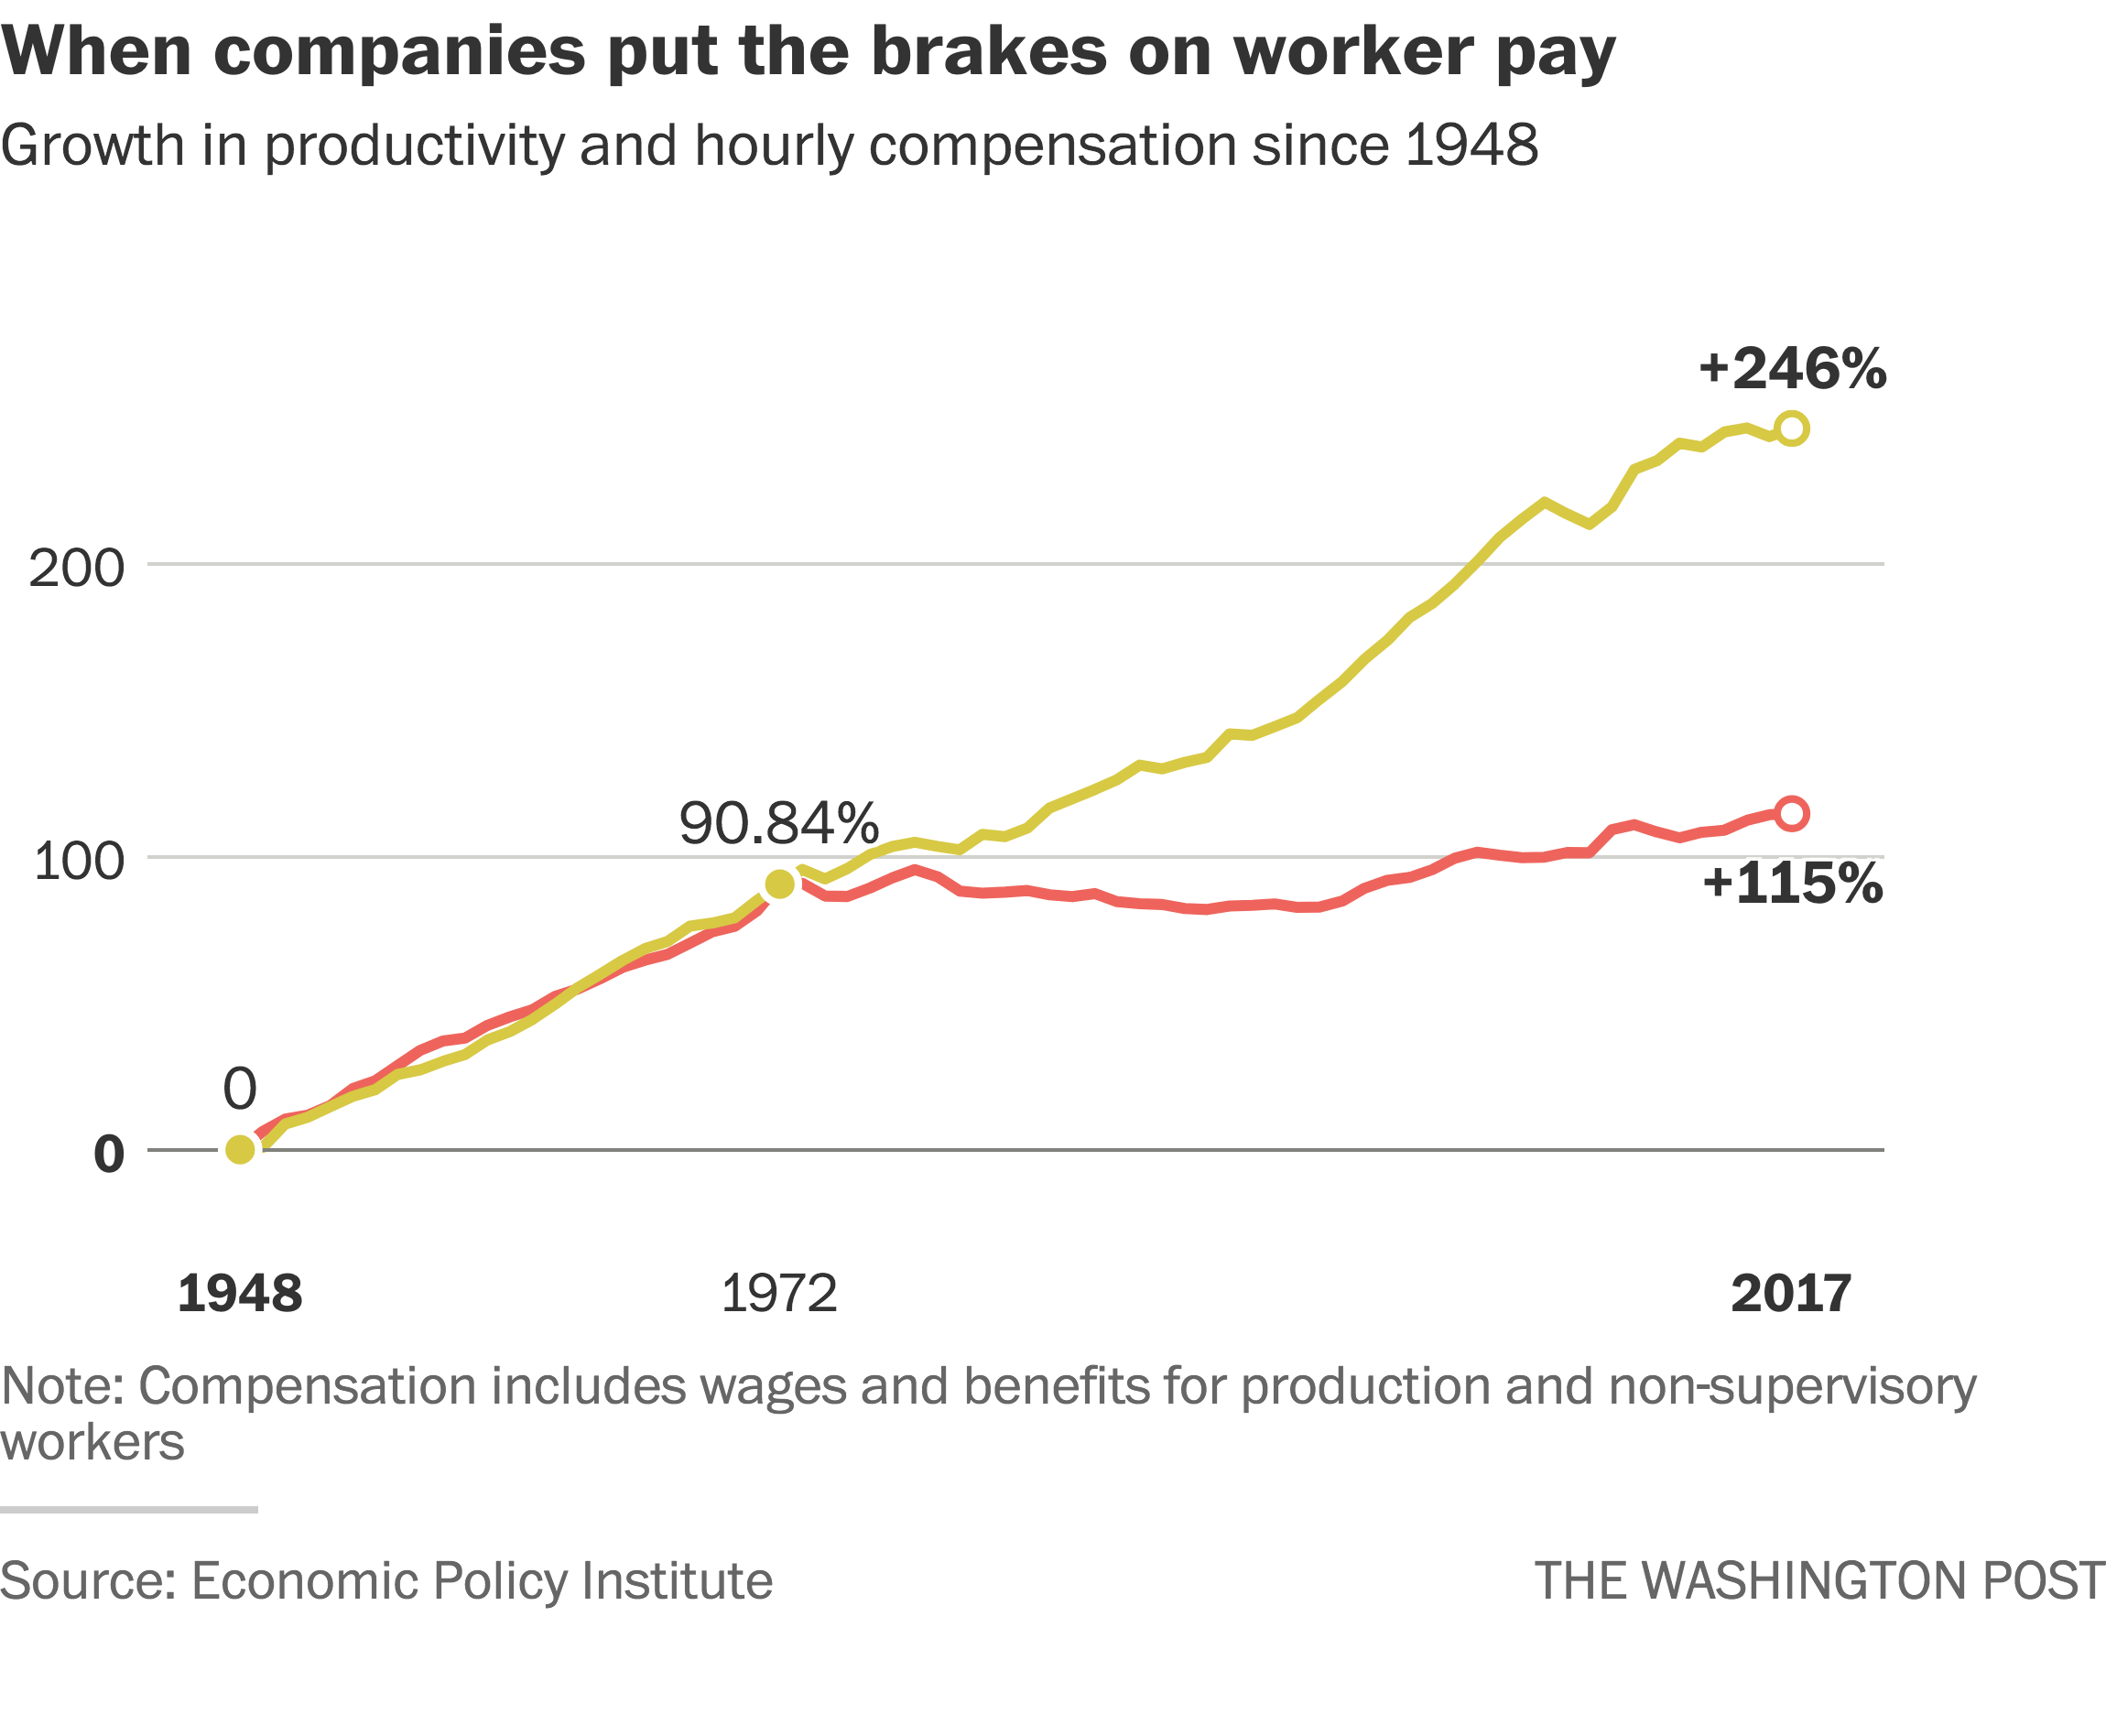 The race for shareholder profits has left workers in the dust, according to  new research - The Washington Post